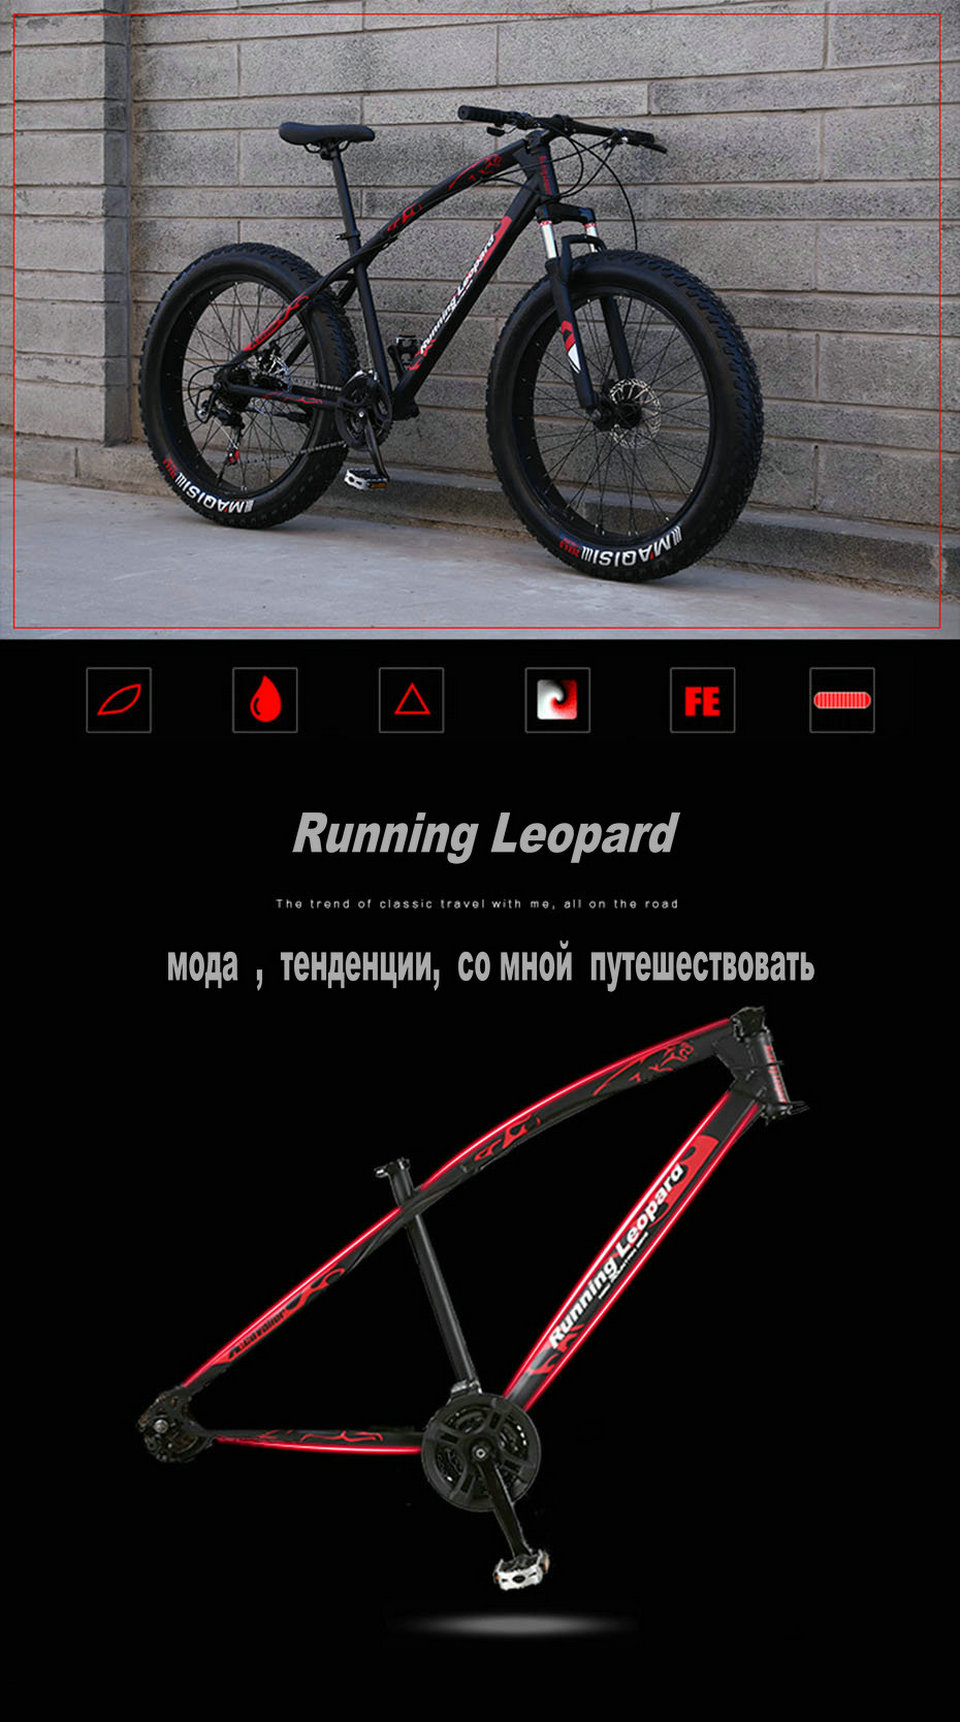 HTB1s1XsceGSBuNjSspbq6AiipXaJ Fat Bike Speed Change Cross-country Mountain Bike, 4.0 Super Wide Tires, Snow Sand Bicycle, Male And Female Student Bicycle